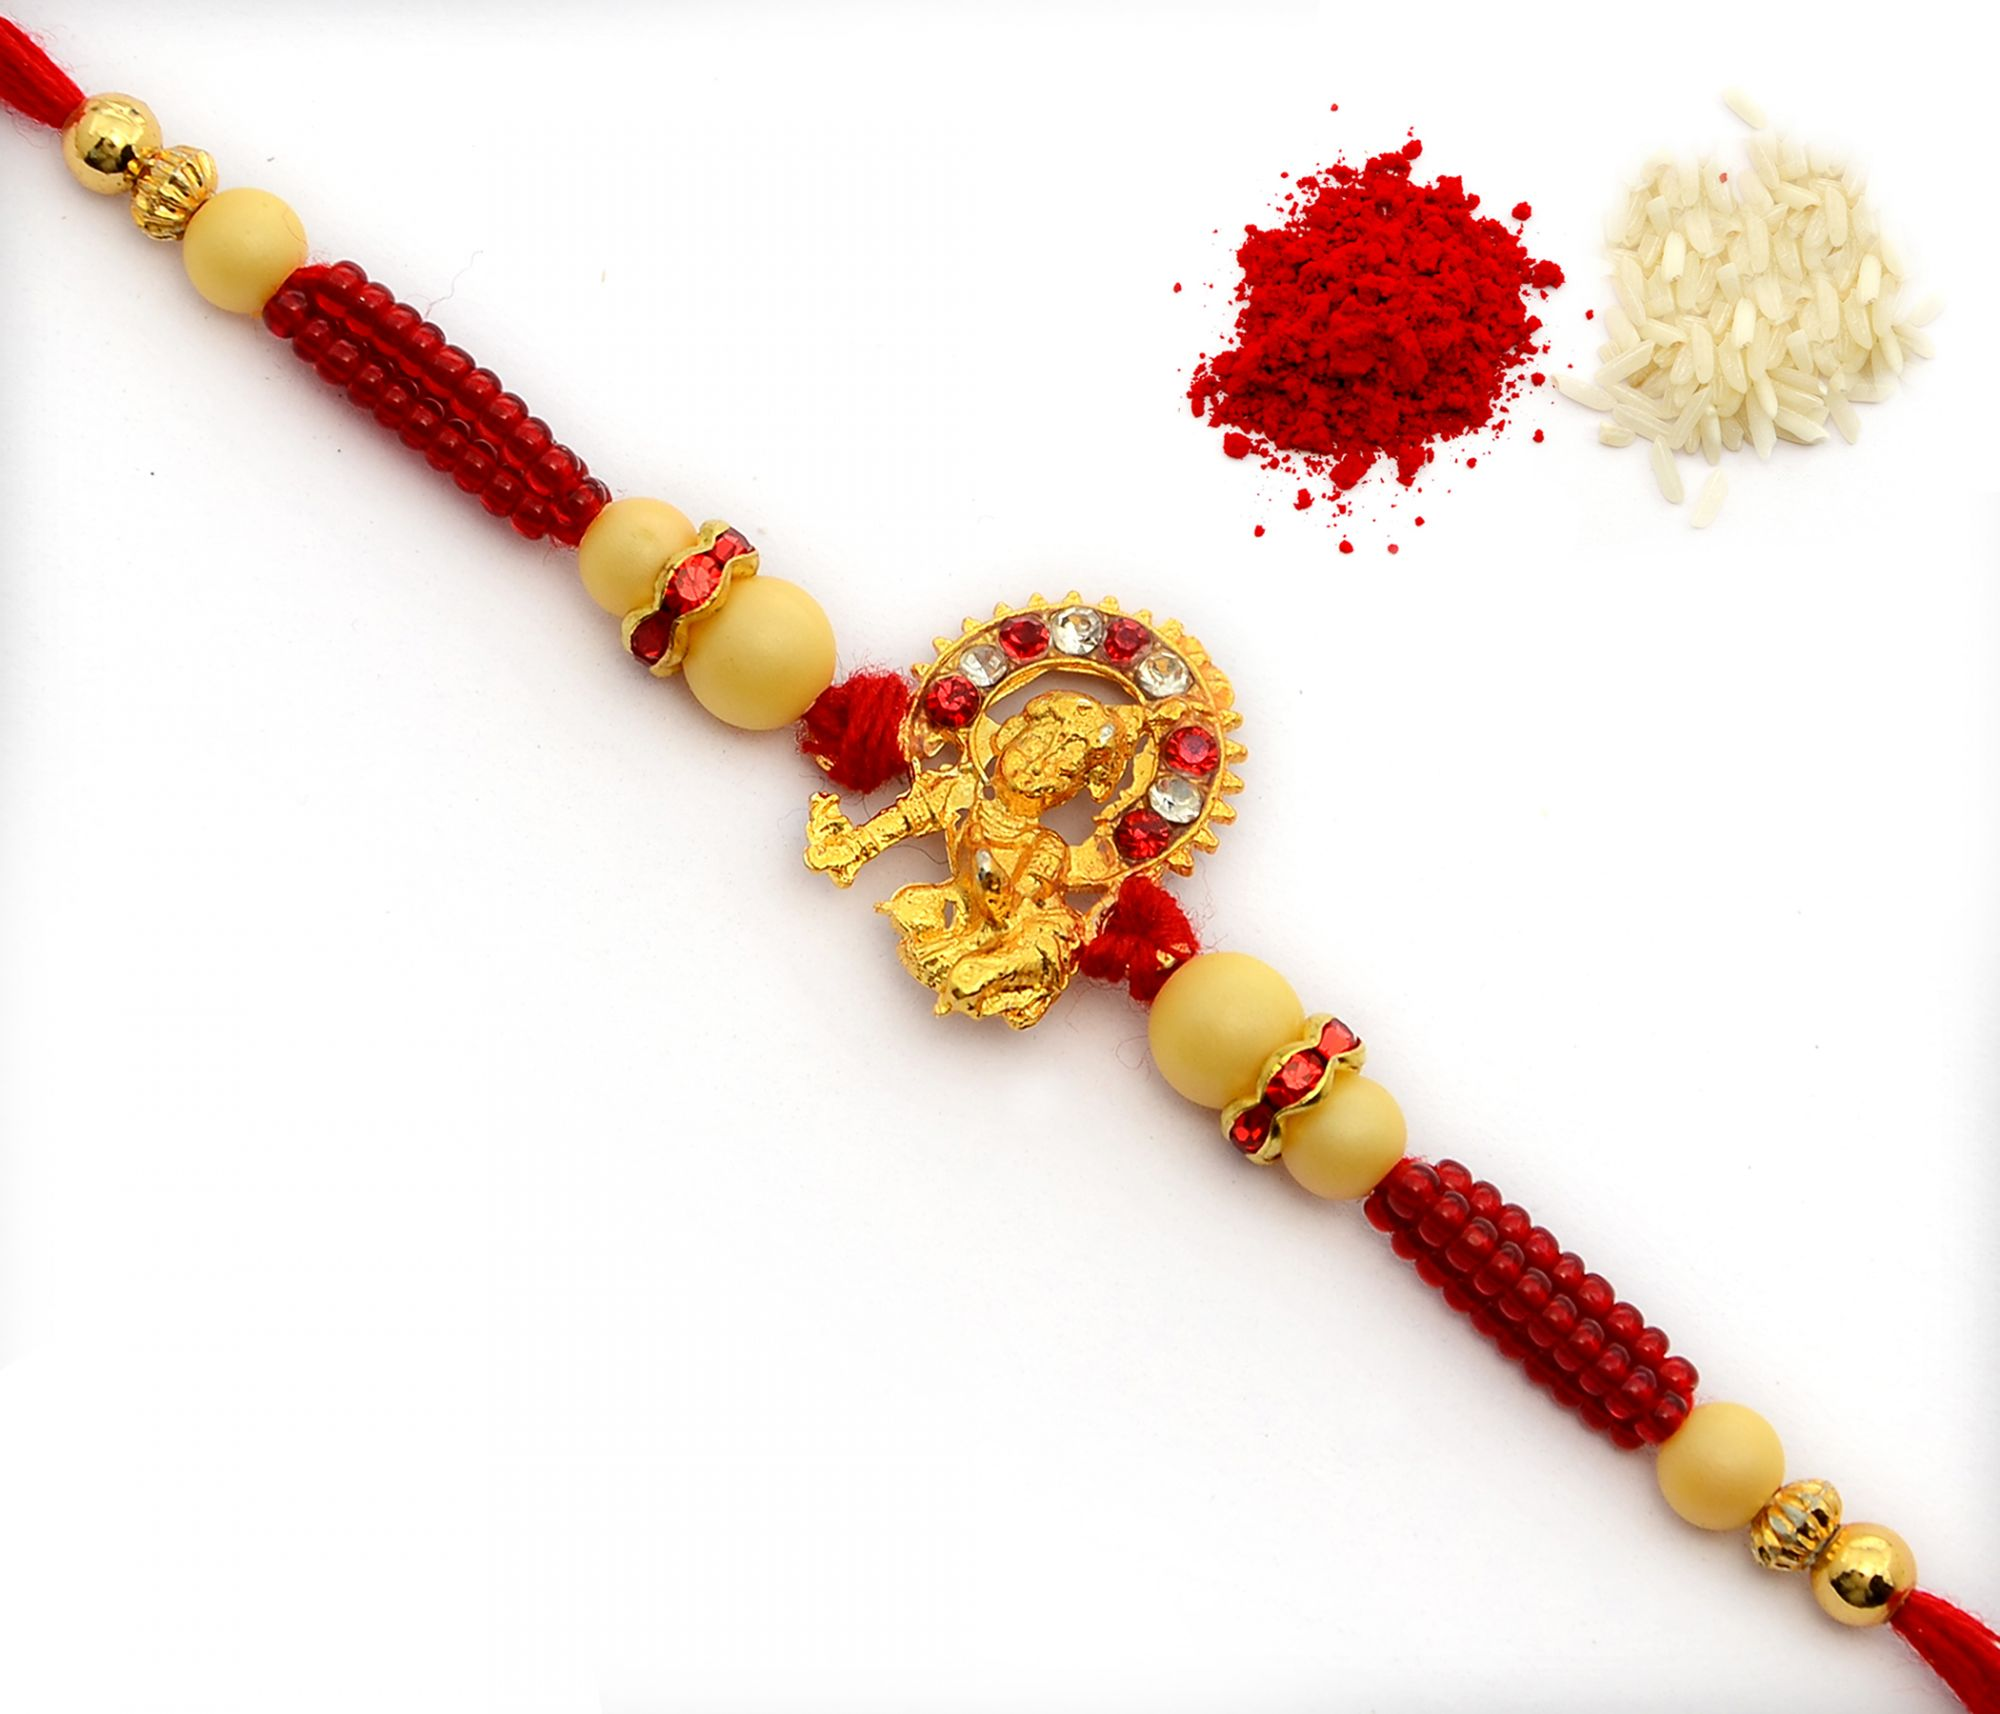 GOLD PLATED KRISHNA METAL PENDANT  WITH GOLDEN AND CHEED HANDCRAFTED BEADS BHAIYA, BHAI, BROTHER RAKHI